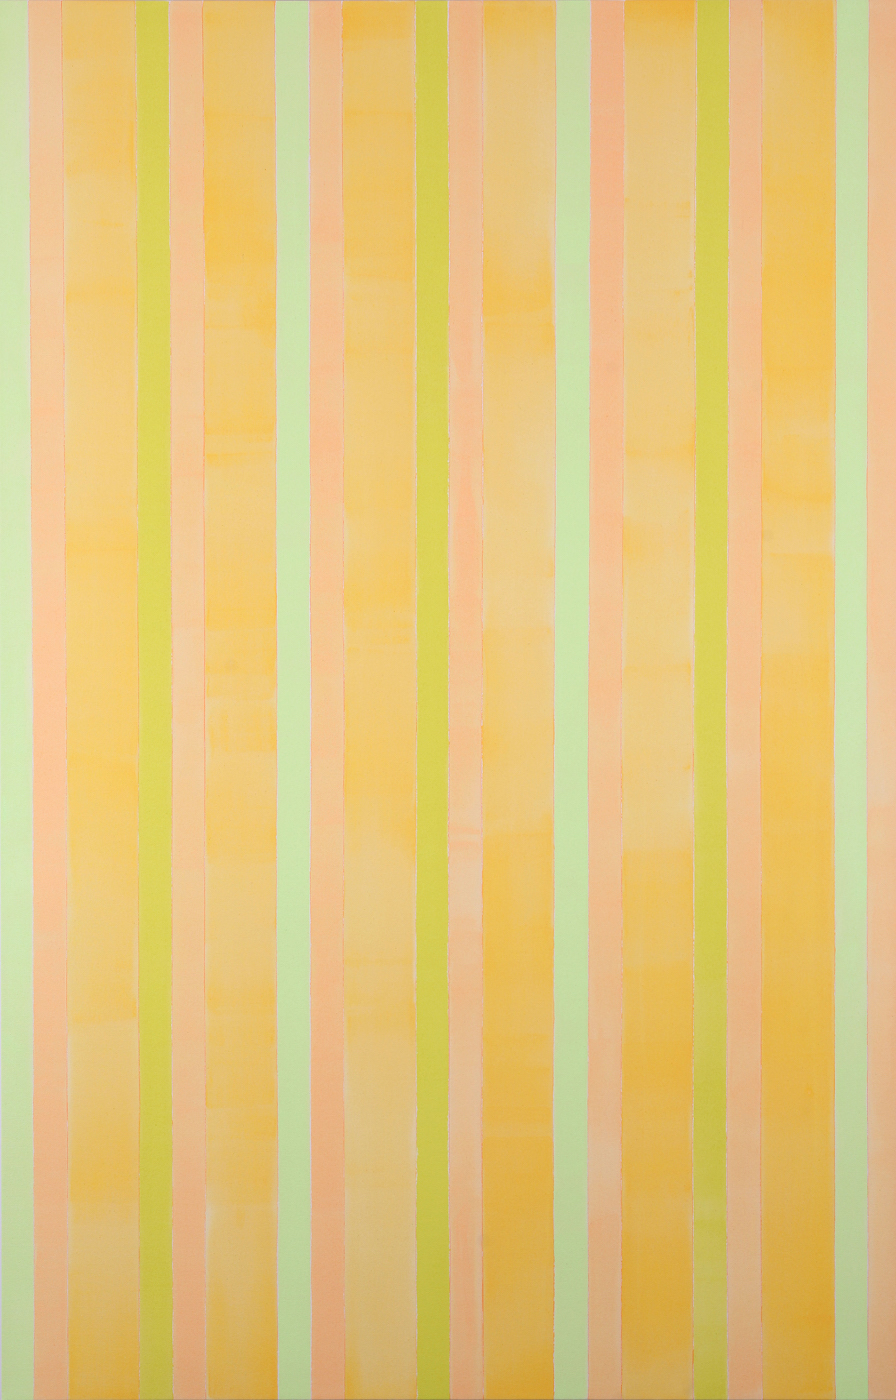 #5 in Gold (2012), acrylic on canvas, 84